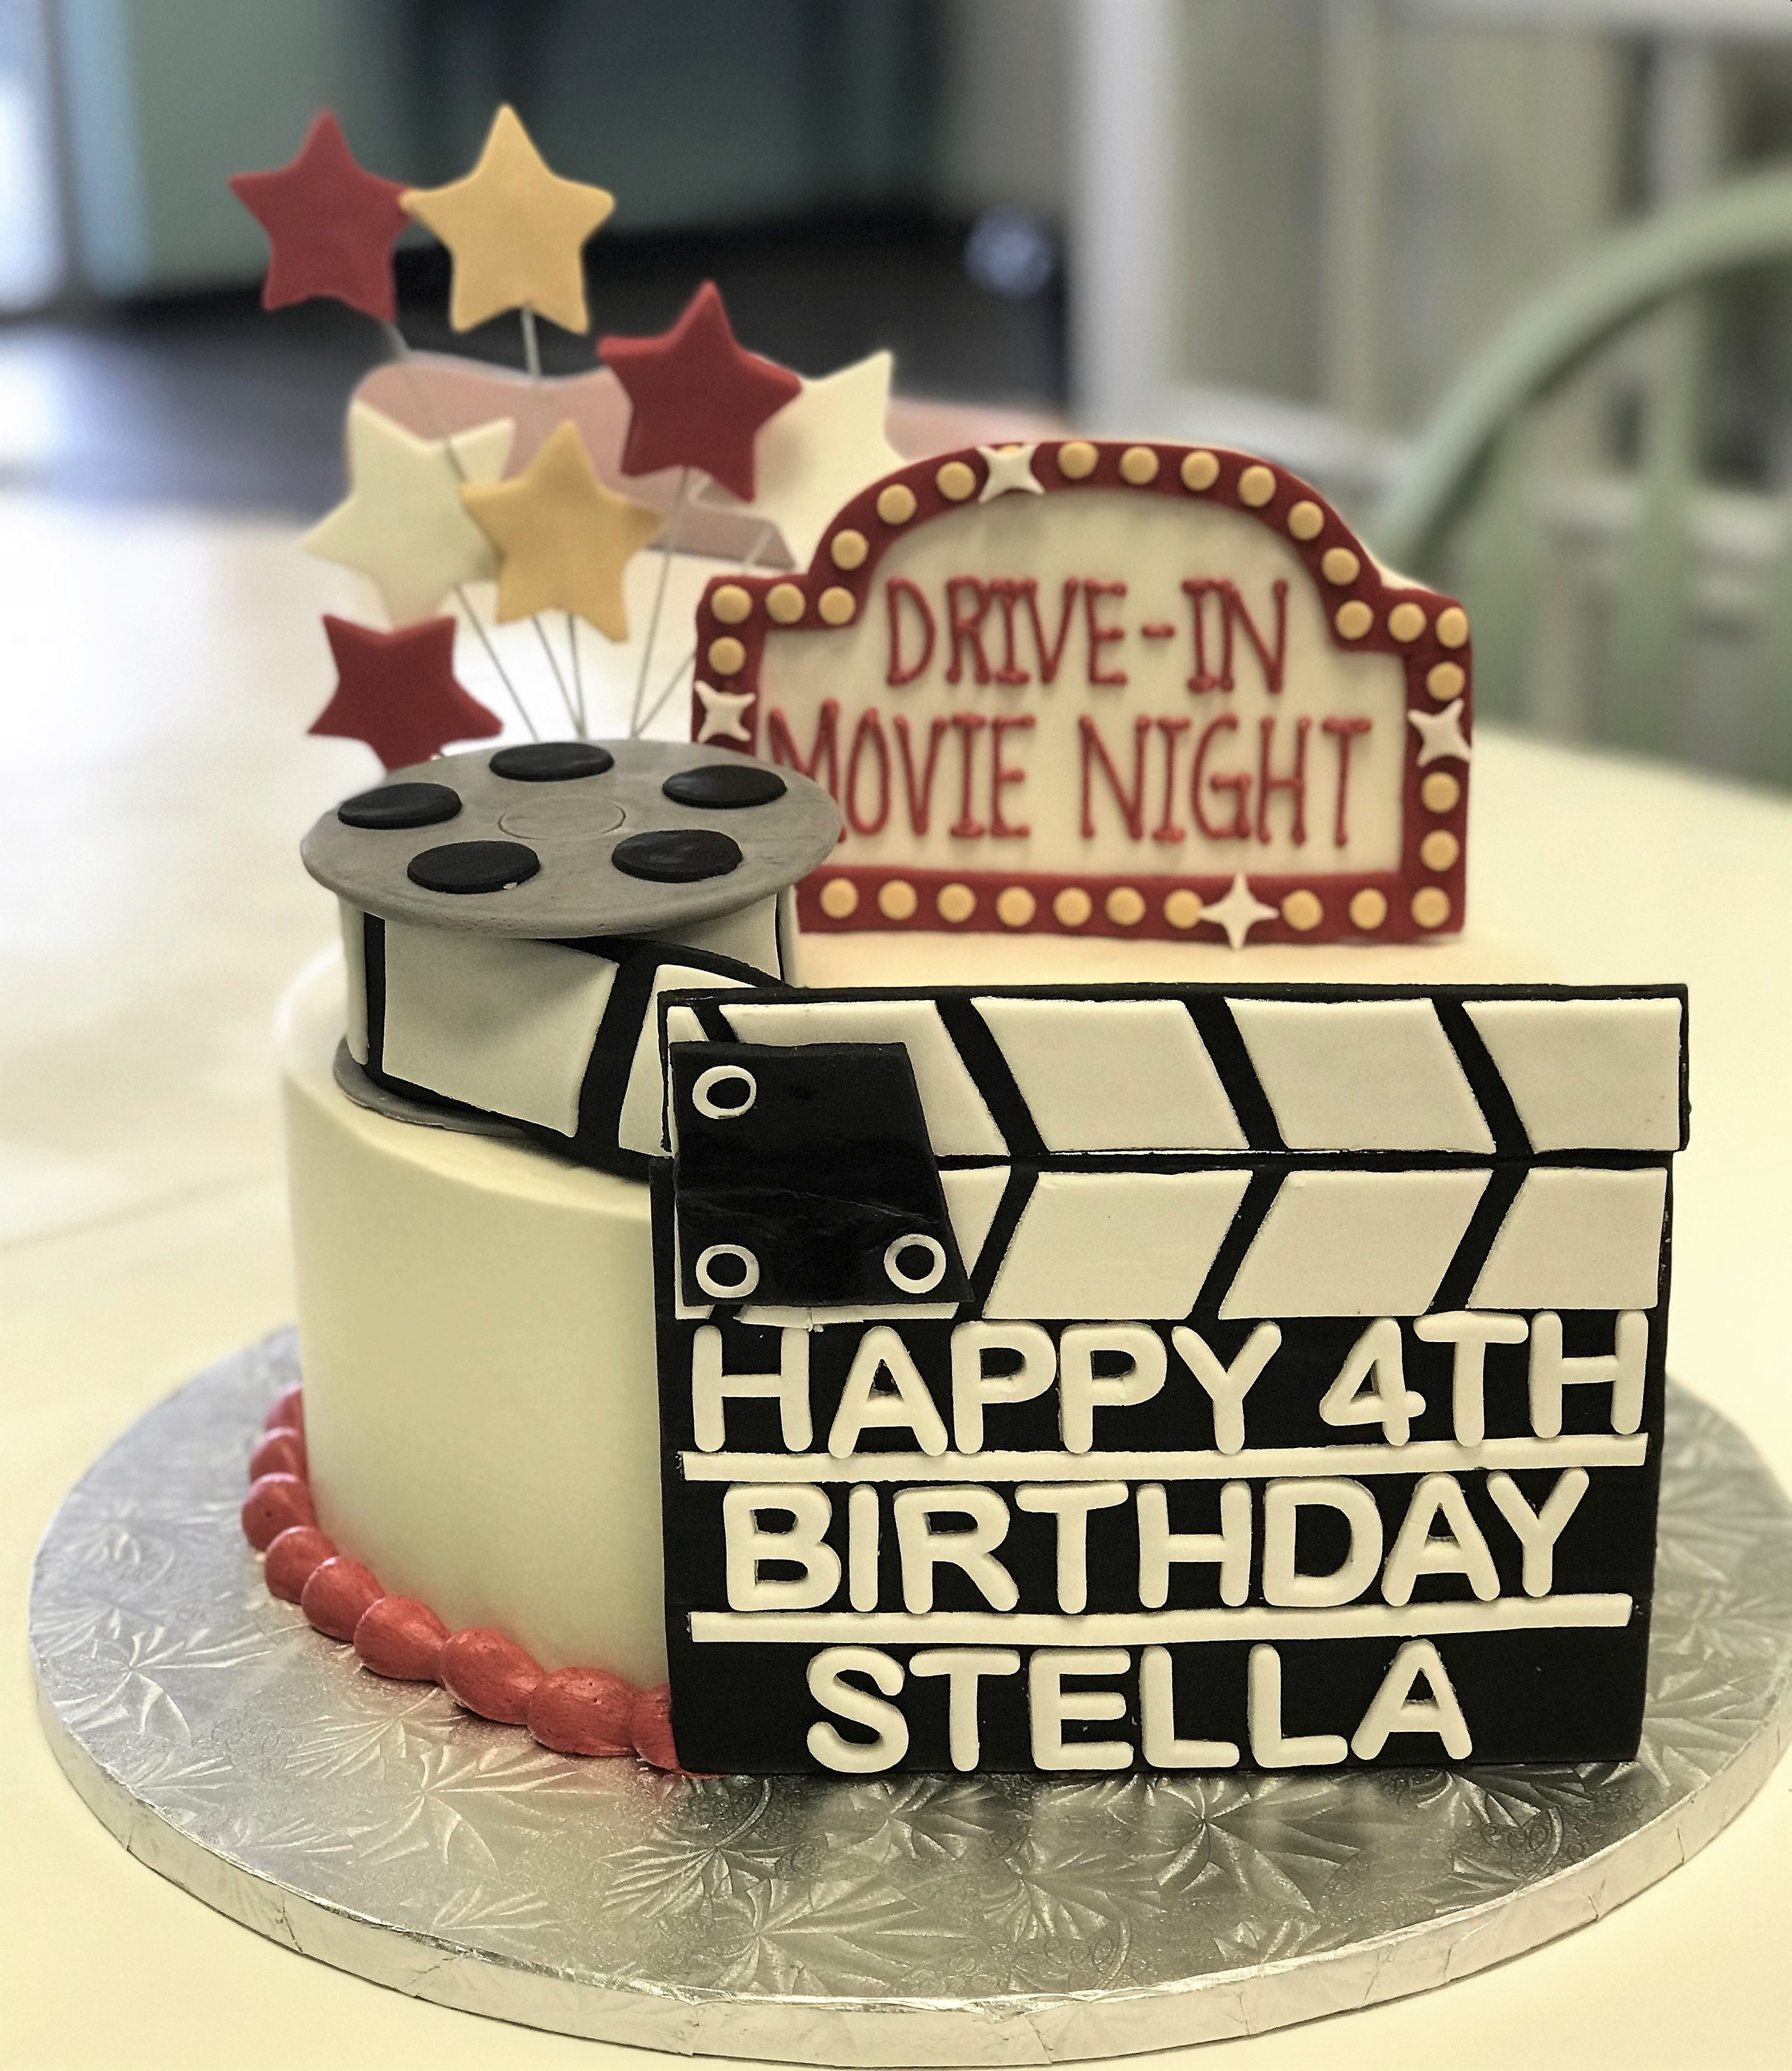 movie reel clapboard cake.jpg